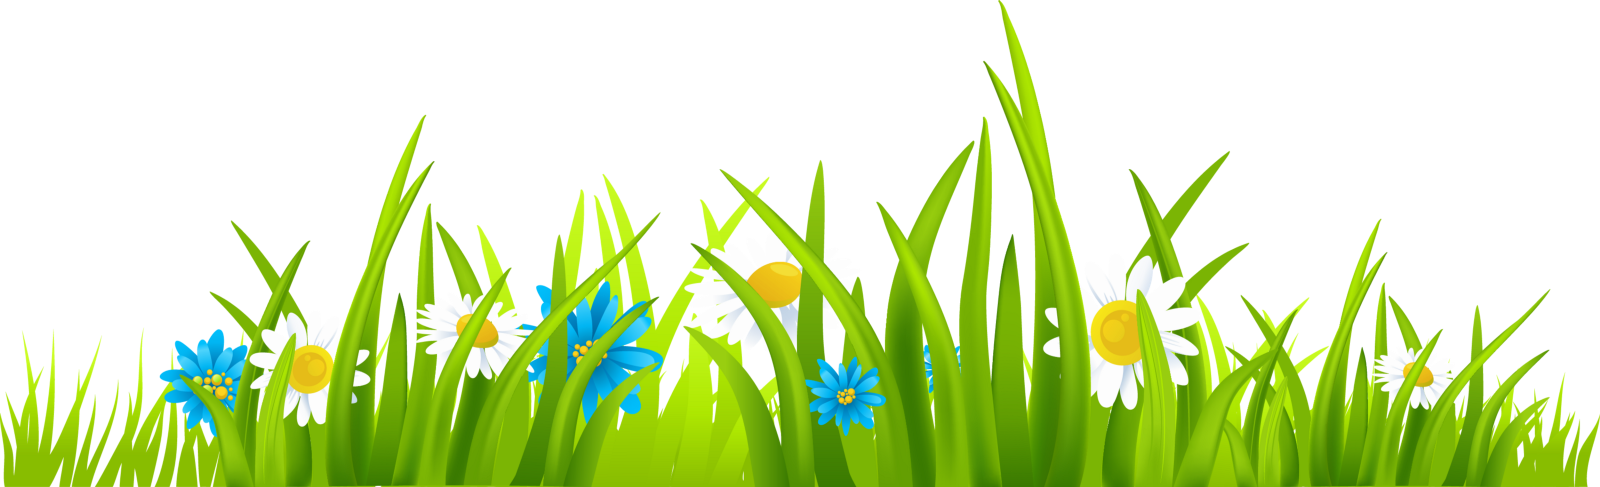 Spring forward your business. Flower meadow clipart